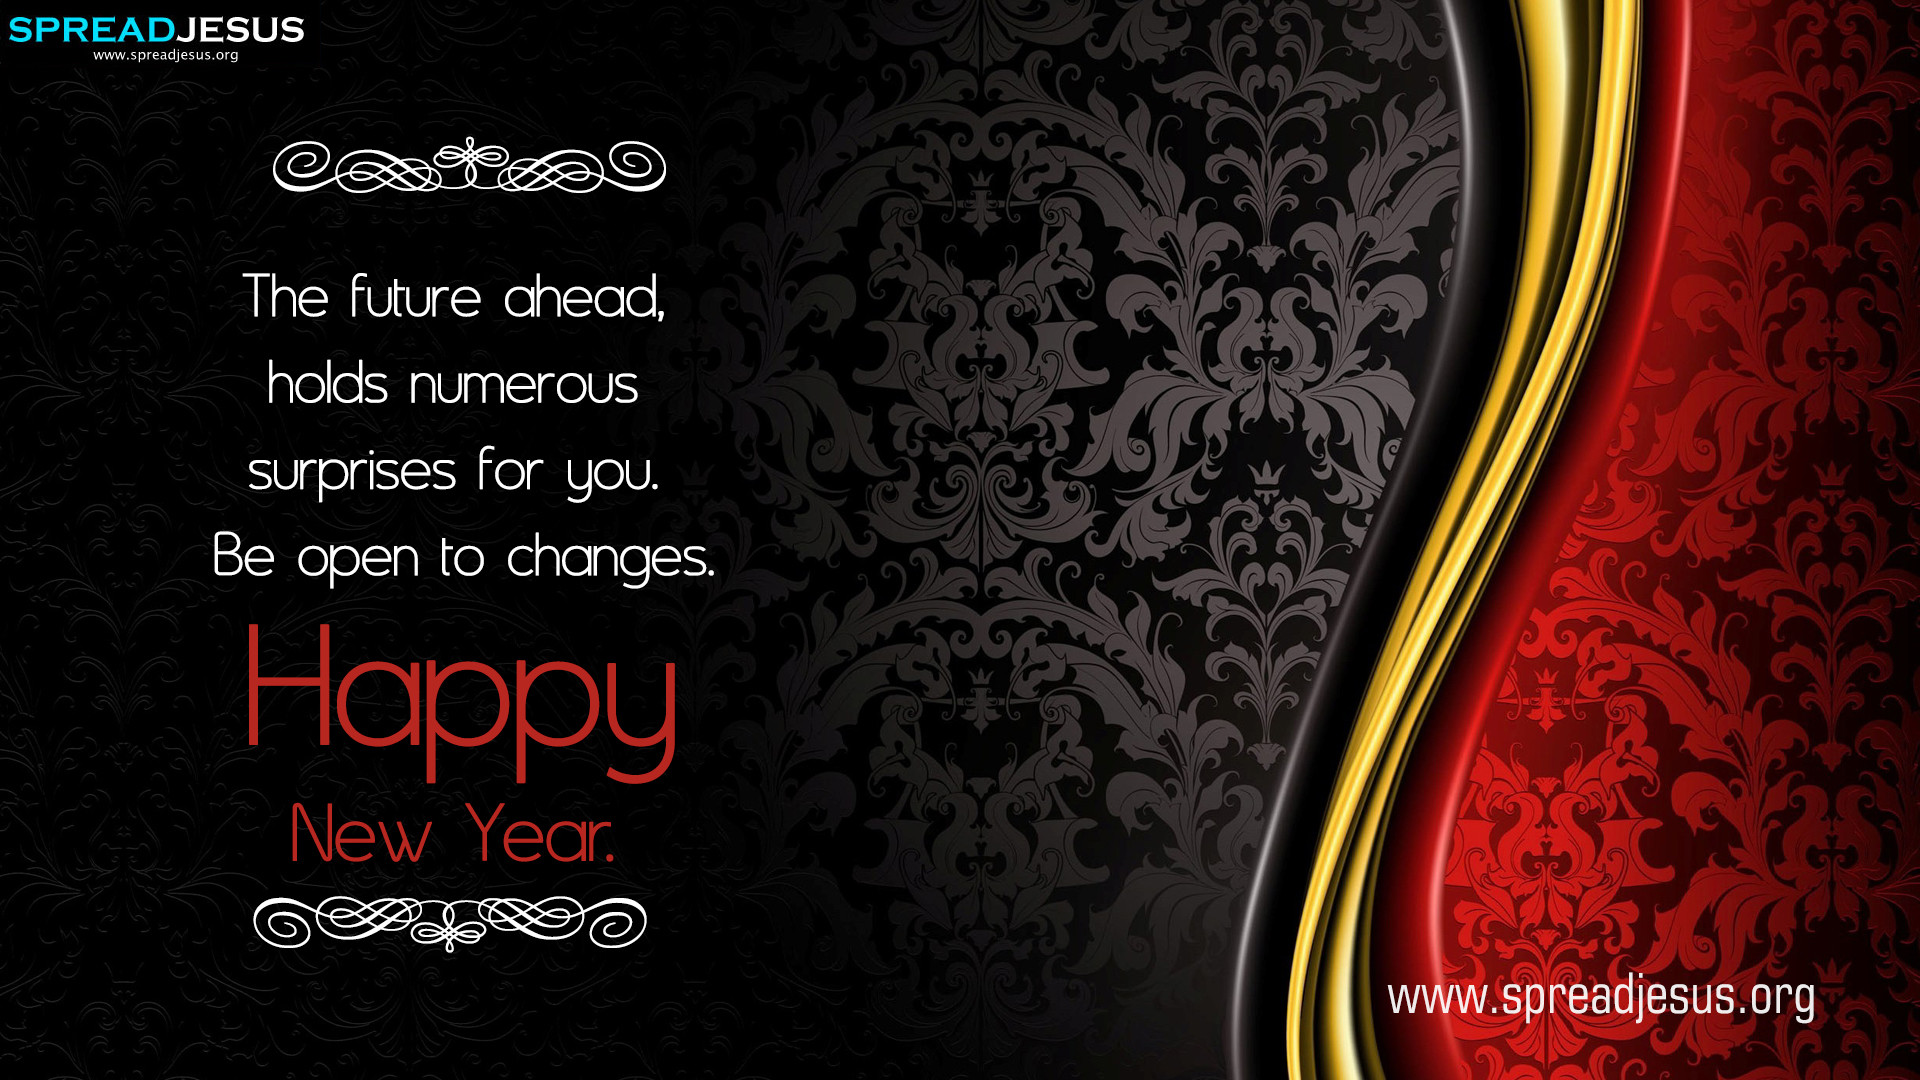 Happy New Year Hd Wallpapers Free Download-1 Happy New Year 2017 HD  Wallpapers Download